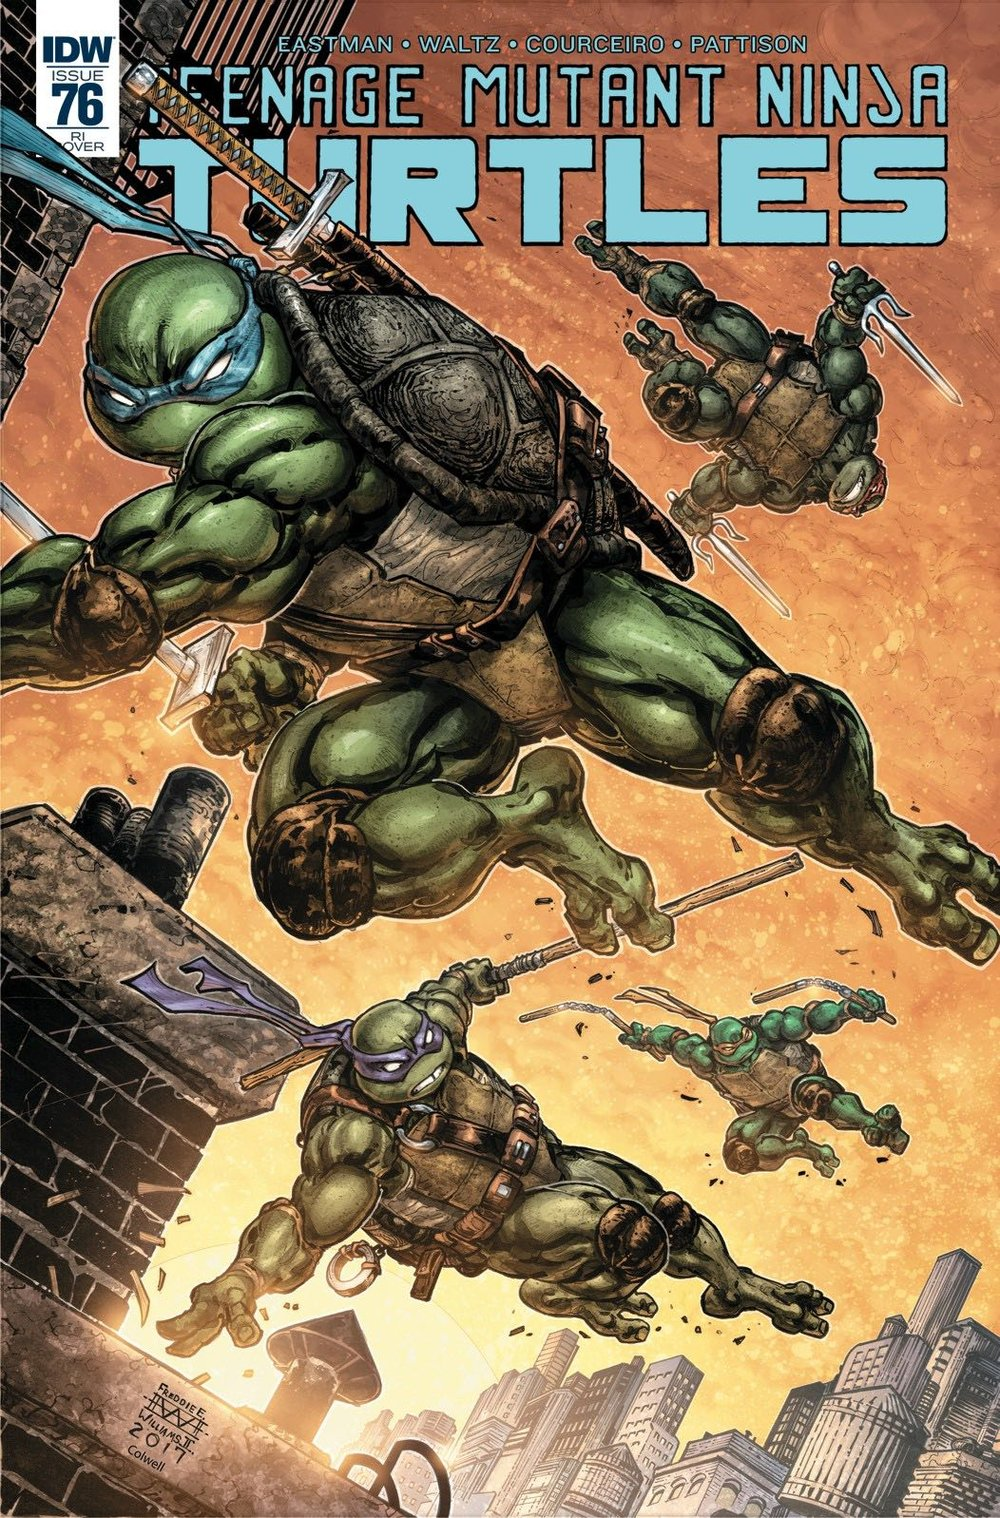 Episode 11 Variant of the Week! - (IDW) Teenage Mutant Ninja Turtles #76 (1/25 Variant)Cover by Kevin EastmanWritten by Tom Waltz and Kevin EastmanIllustrated by Damian CouceiroDid the Content Match the Drapes? - Yes, but needed more turtles!